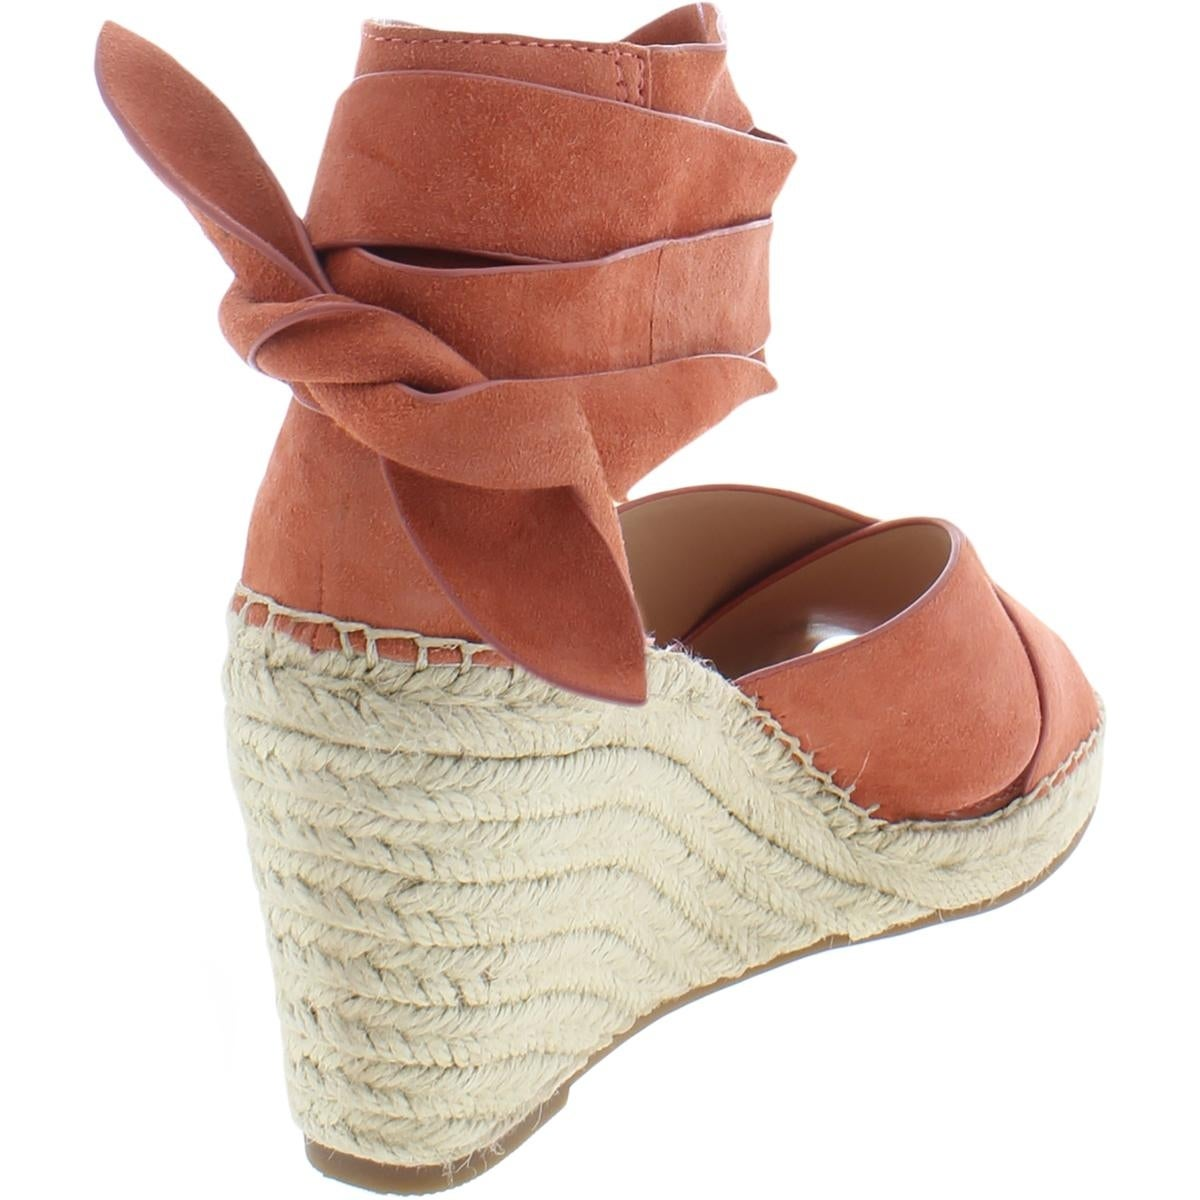 1fd4592a7b9 Shop Vince Camuto Womens Leddy Wedge Sandals Leather Espadrille - Free  Shipping Today - Overstock.com - 21480854